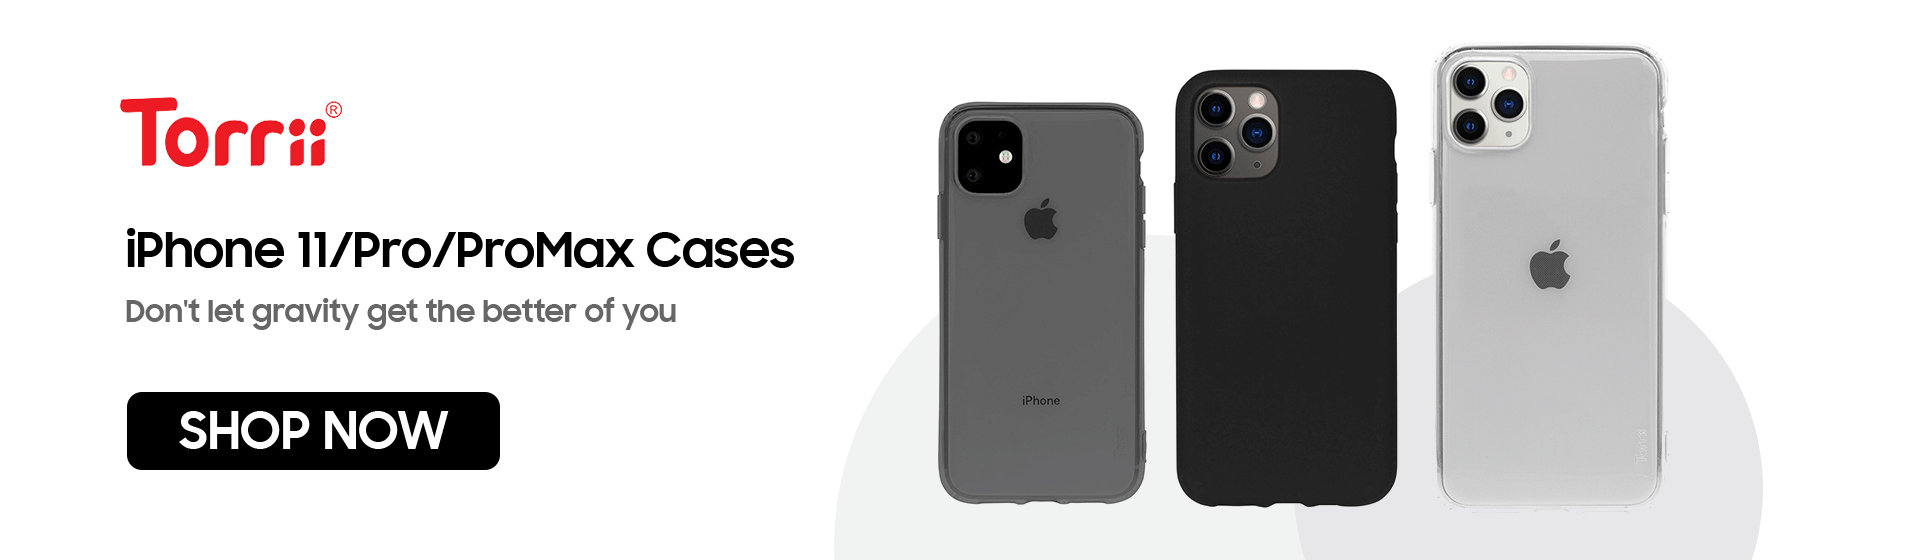 Torii Cases for iPhone 11/Pro/ProMax